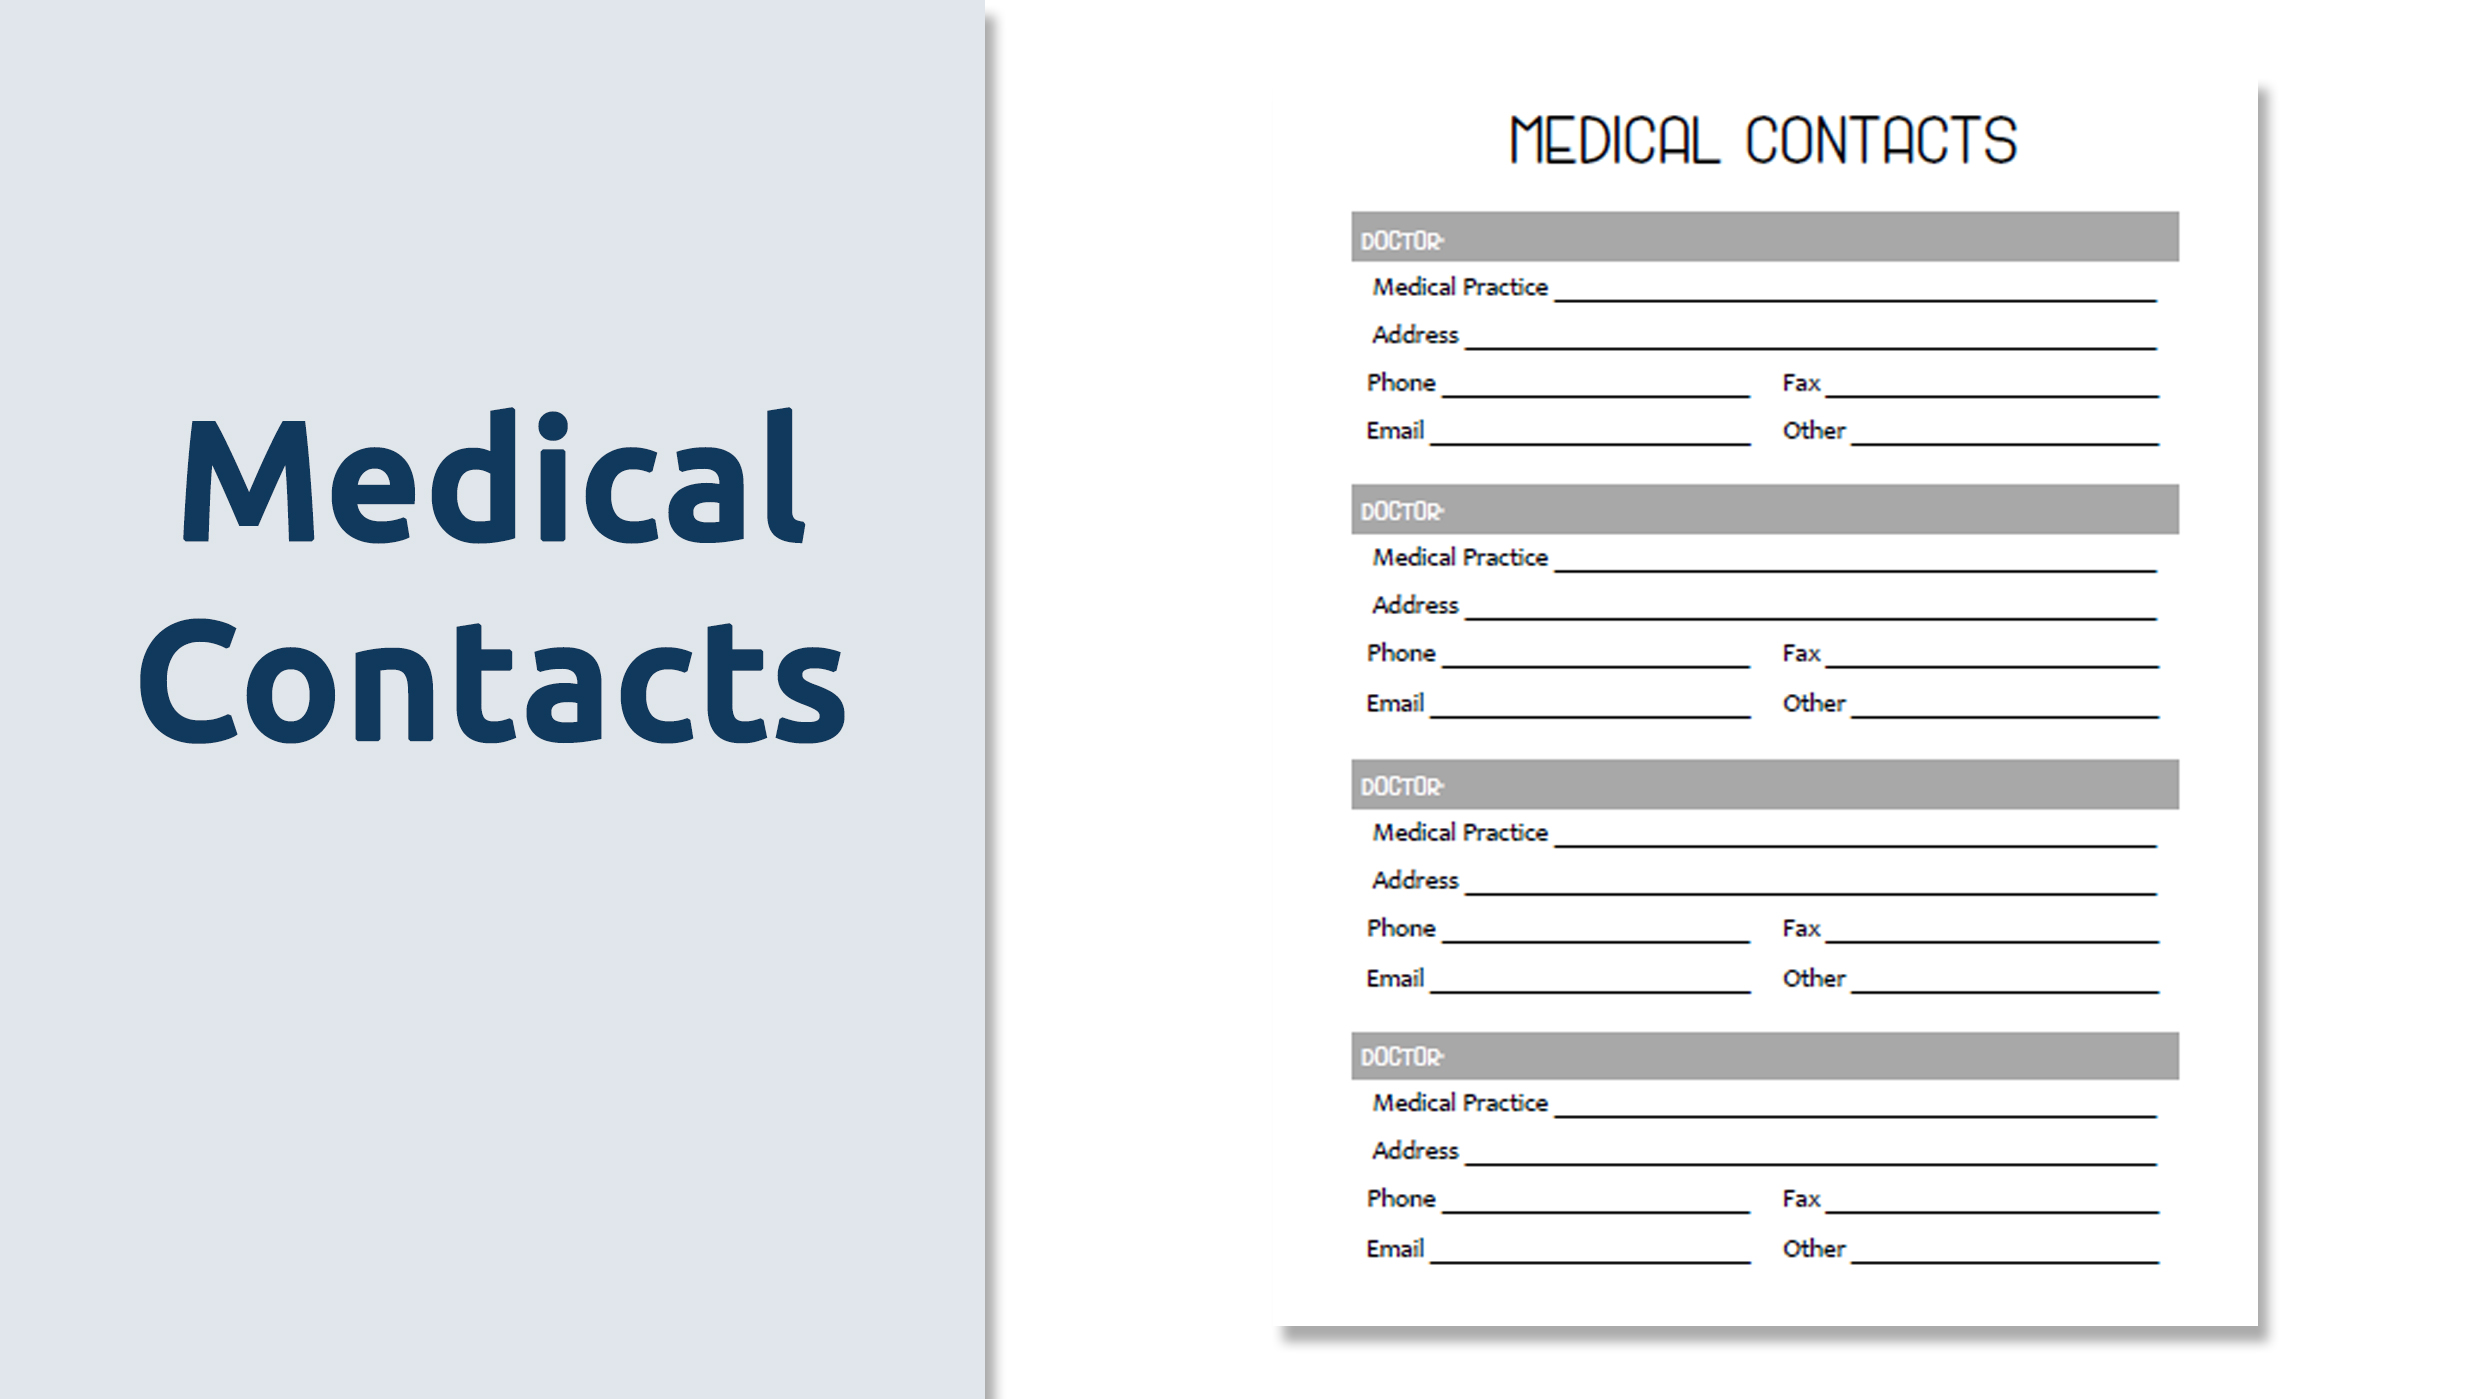 Medical Contacts.jpg